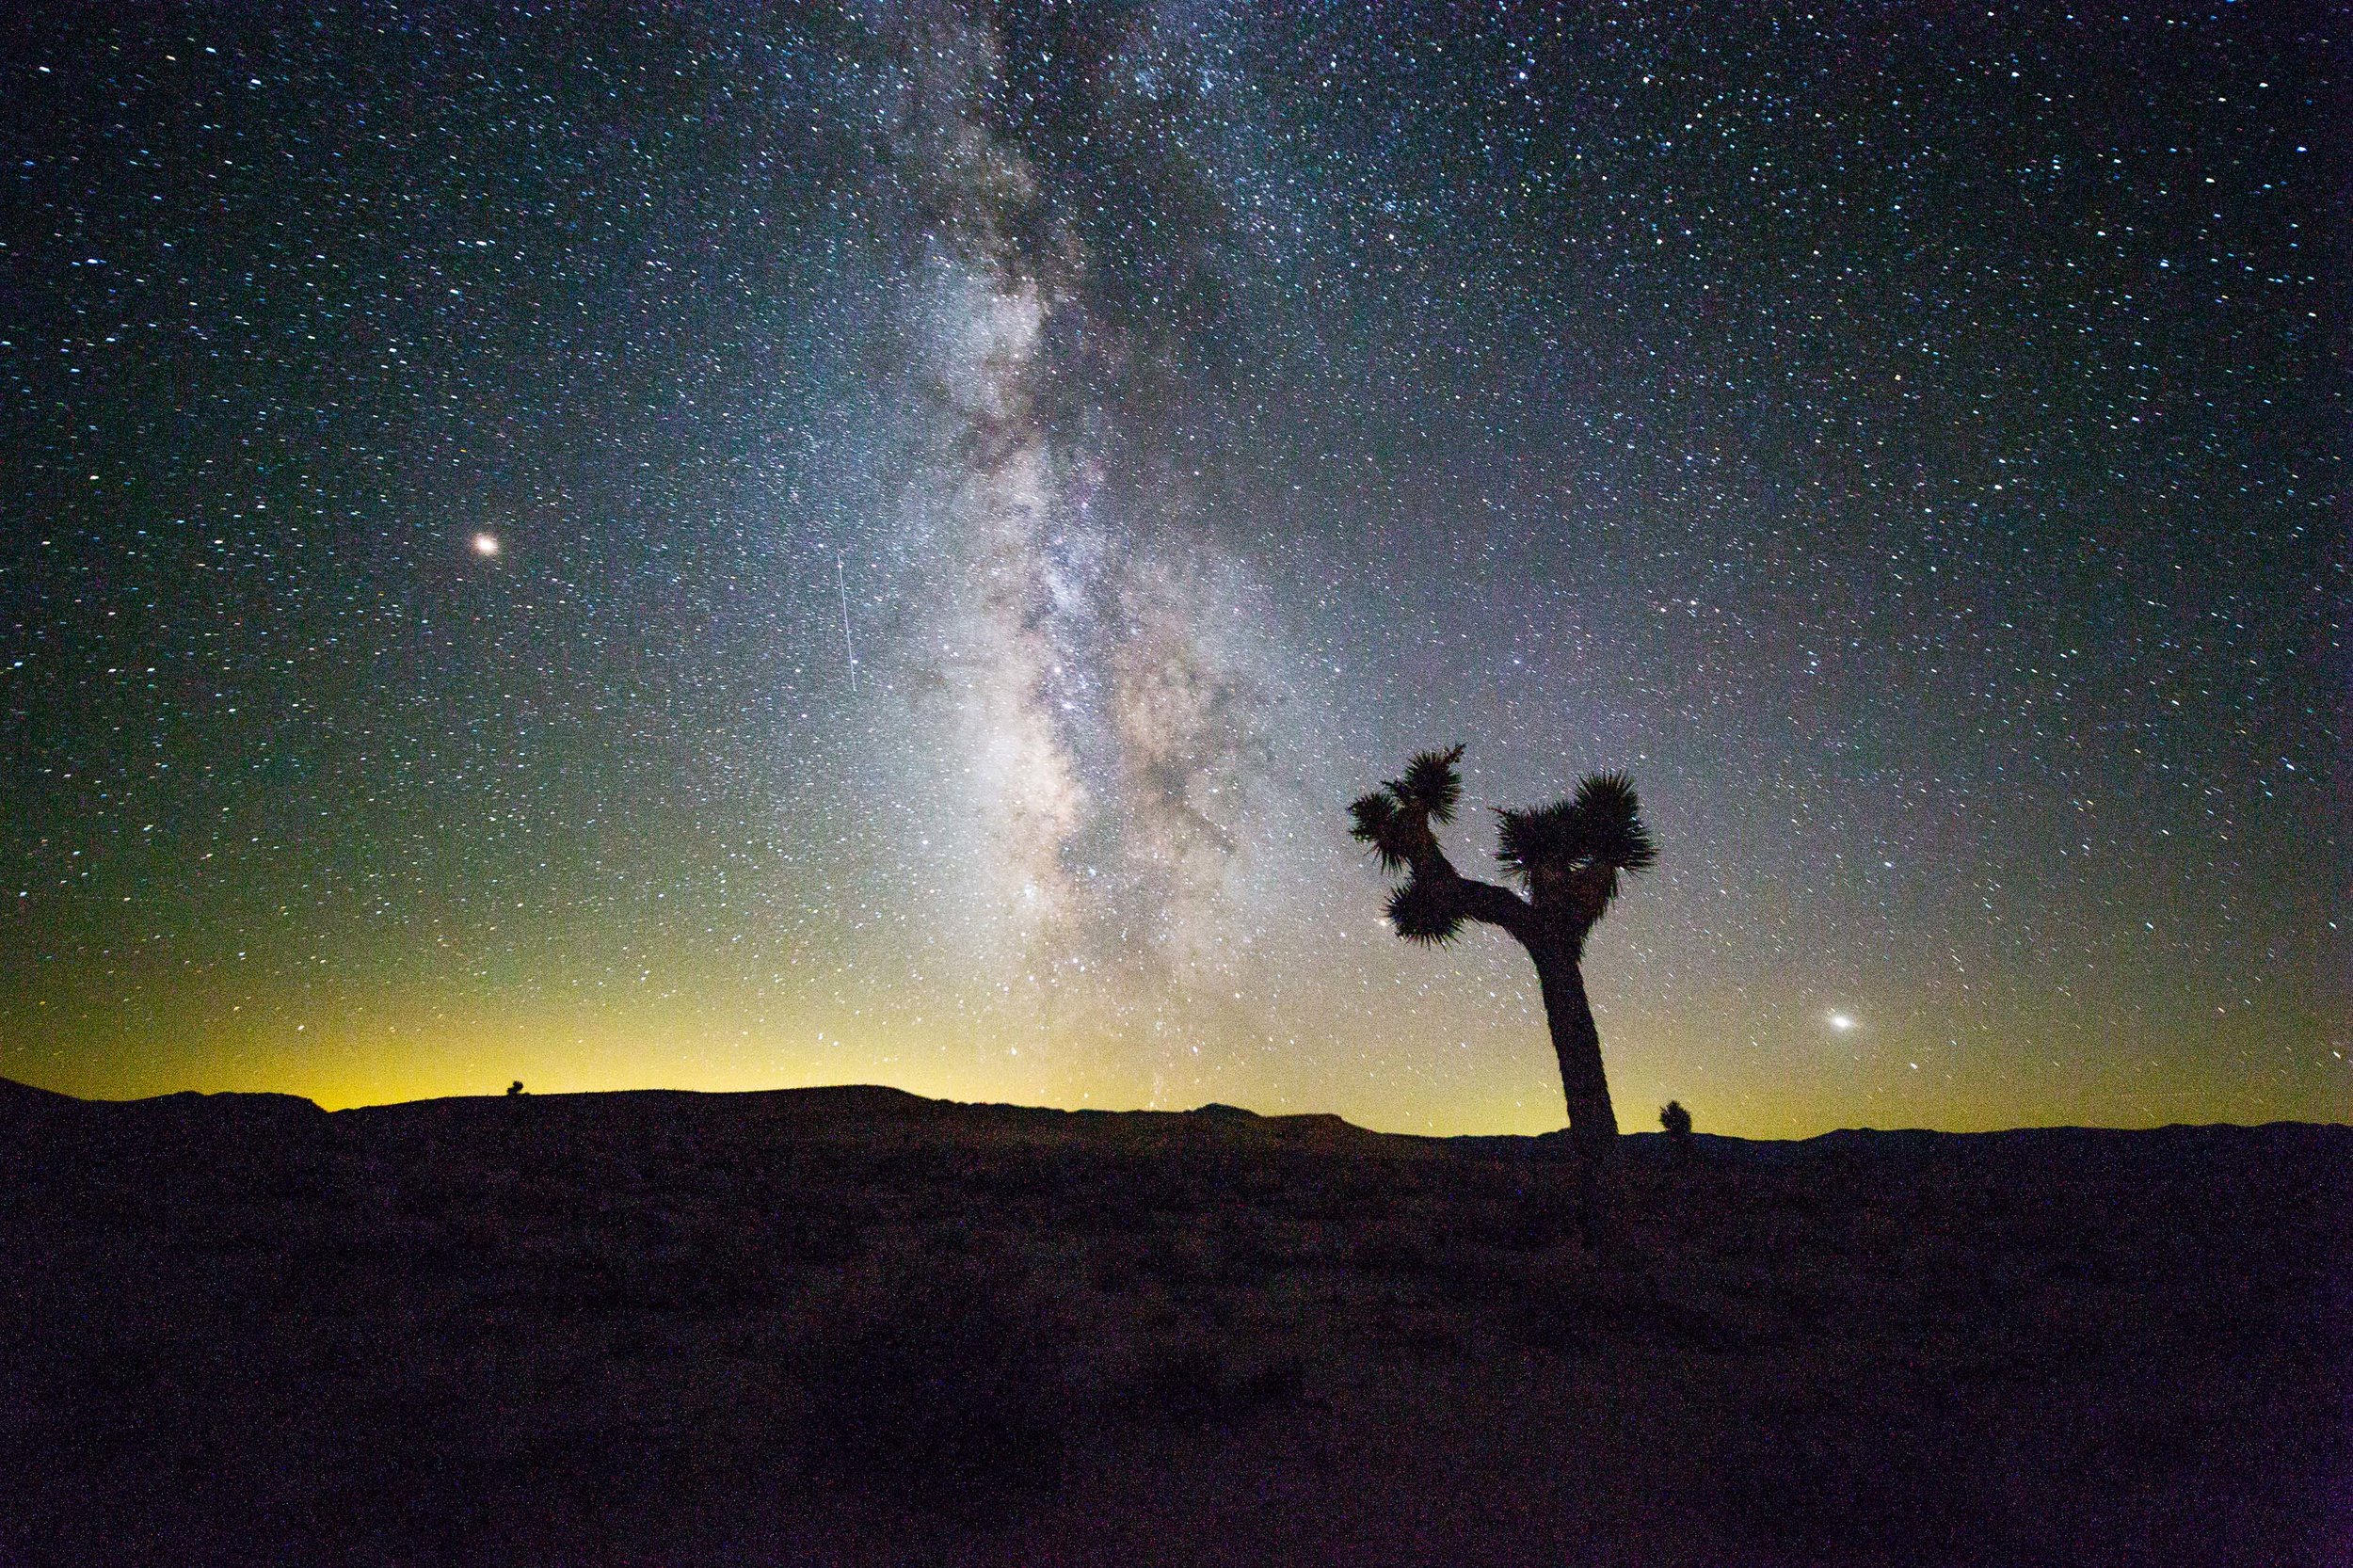 The center of the galaxy soars over a Joshua Tree outside of Death Valley